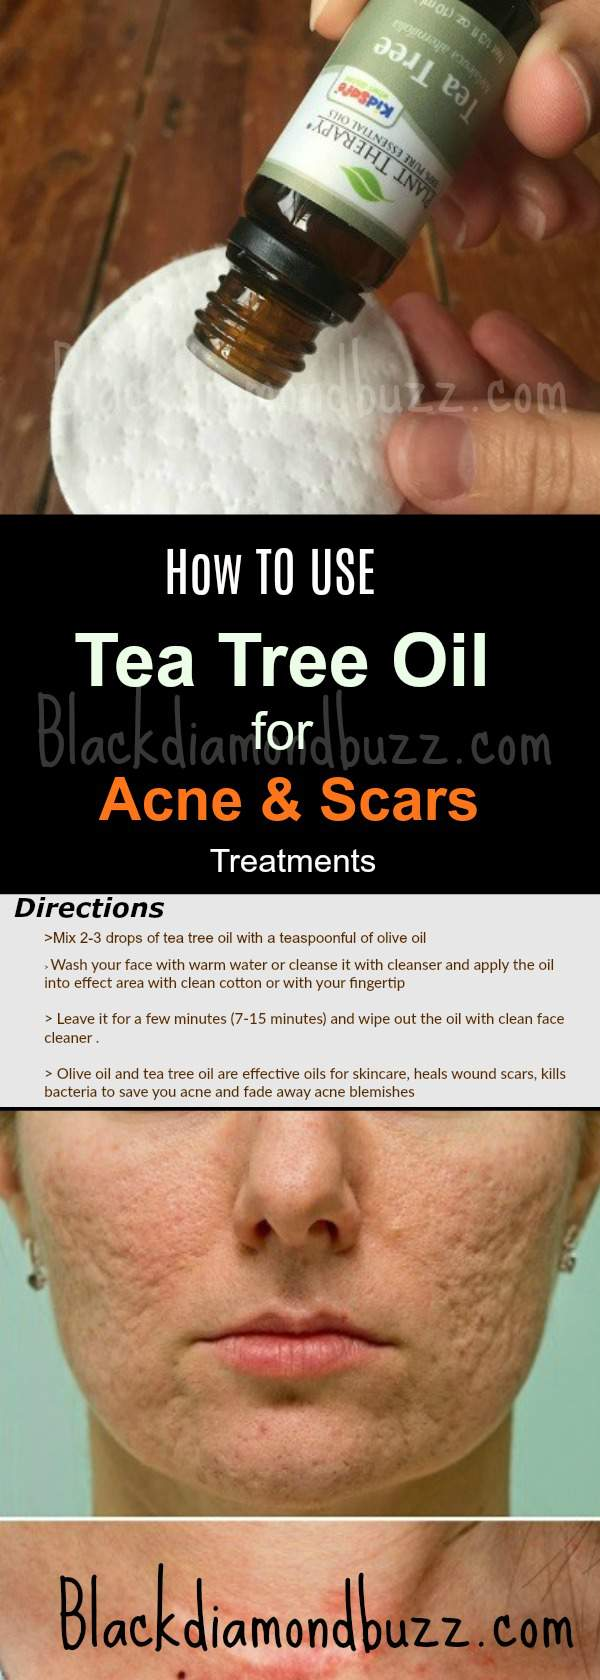 How to use Tea Tree Oil for Acne and Scars Treatments